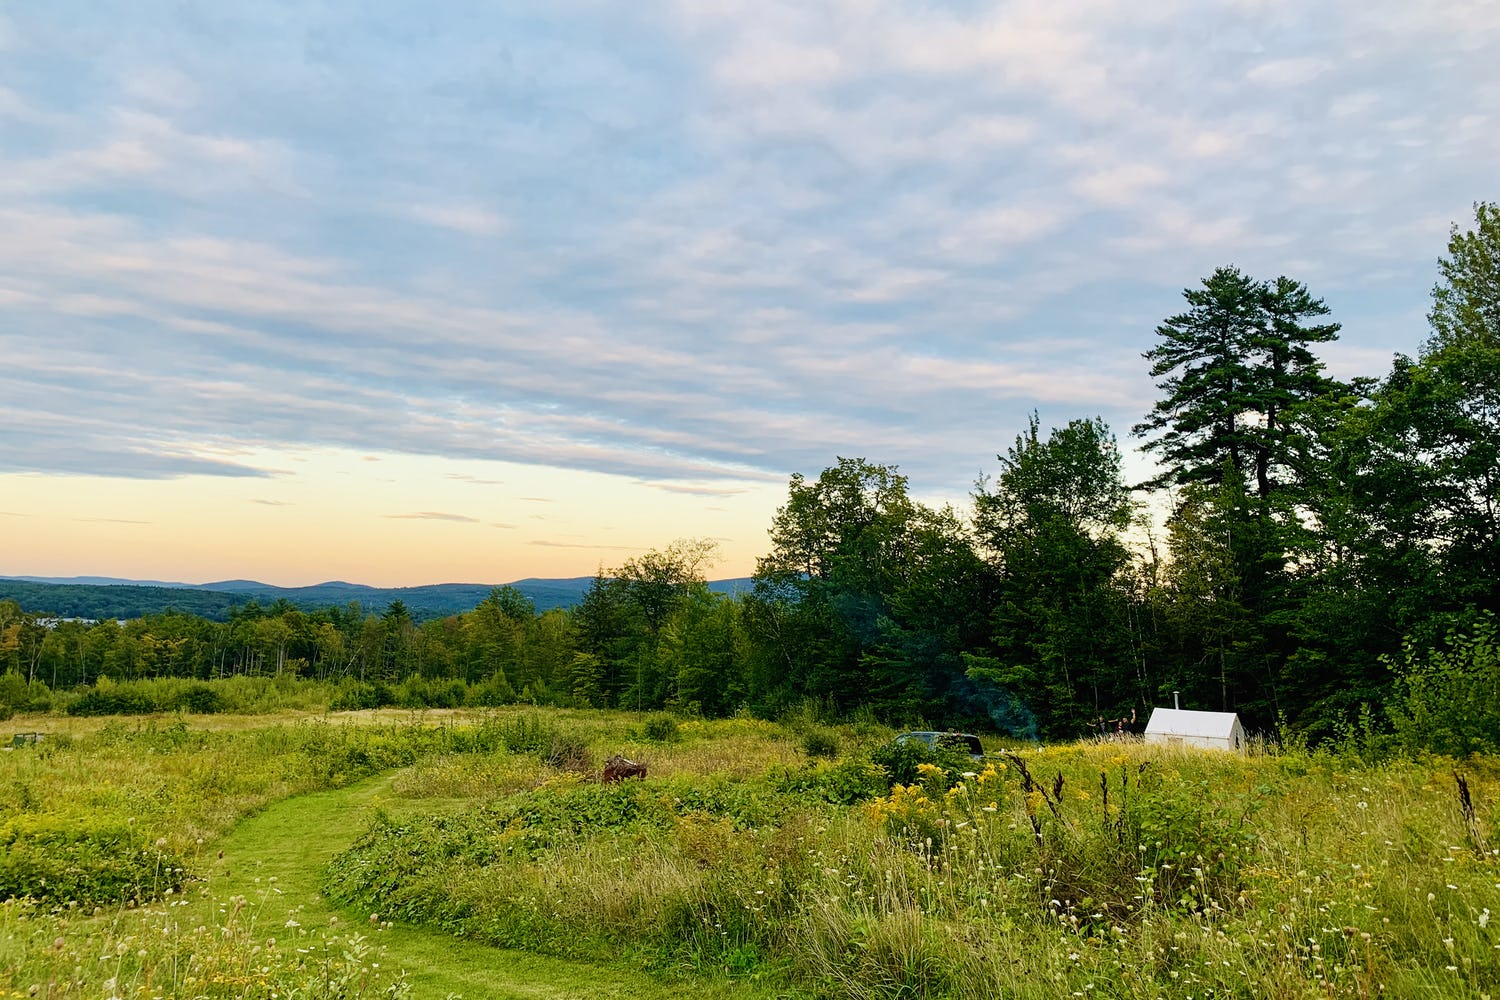 Top 5 Destinations for Luxurious Camping in New Hampshire